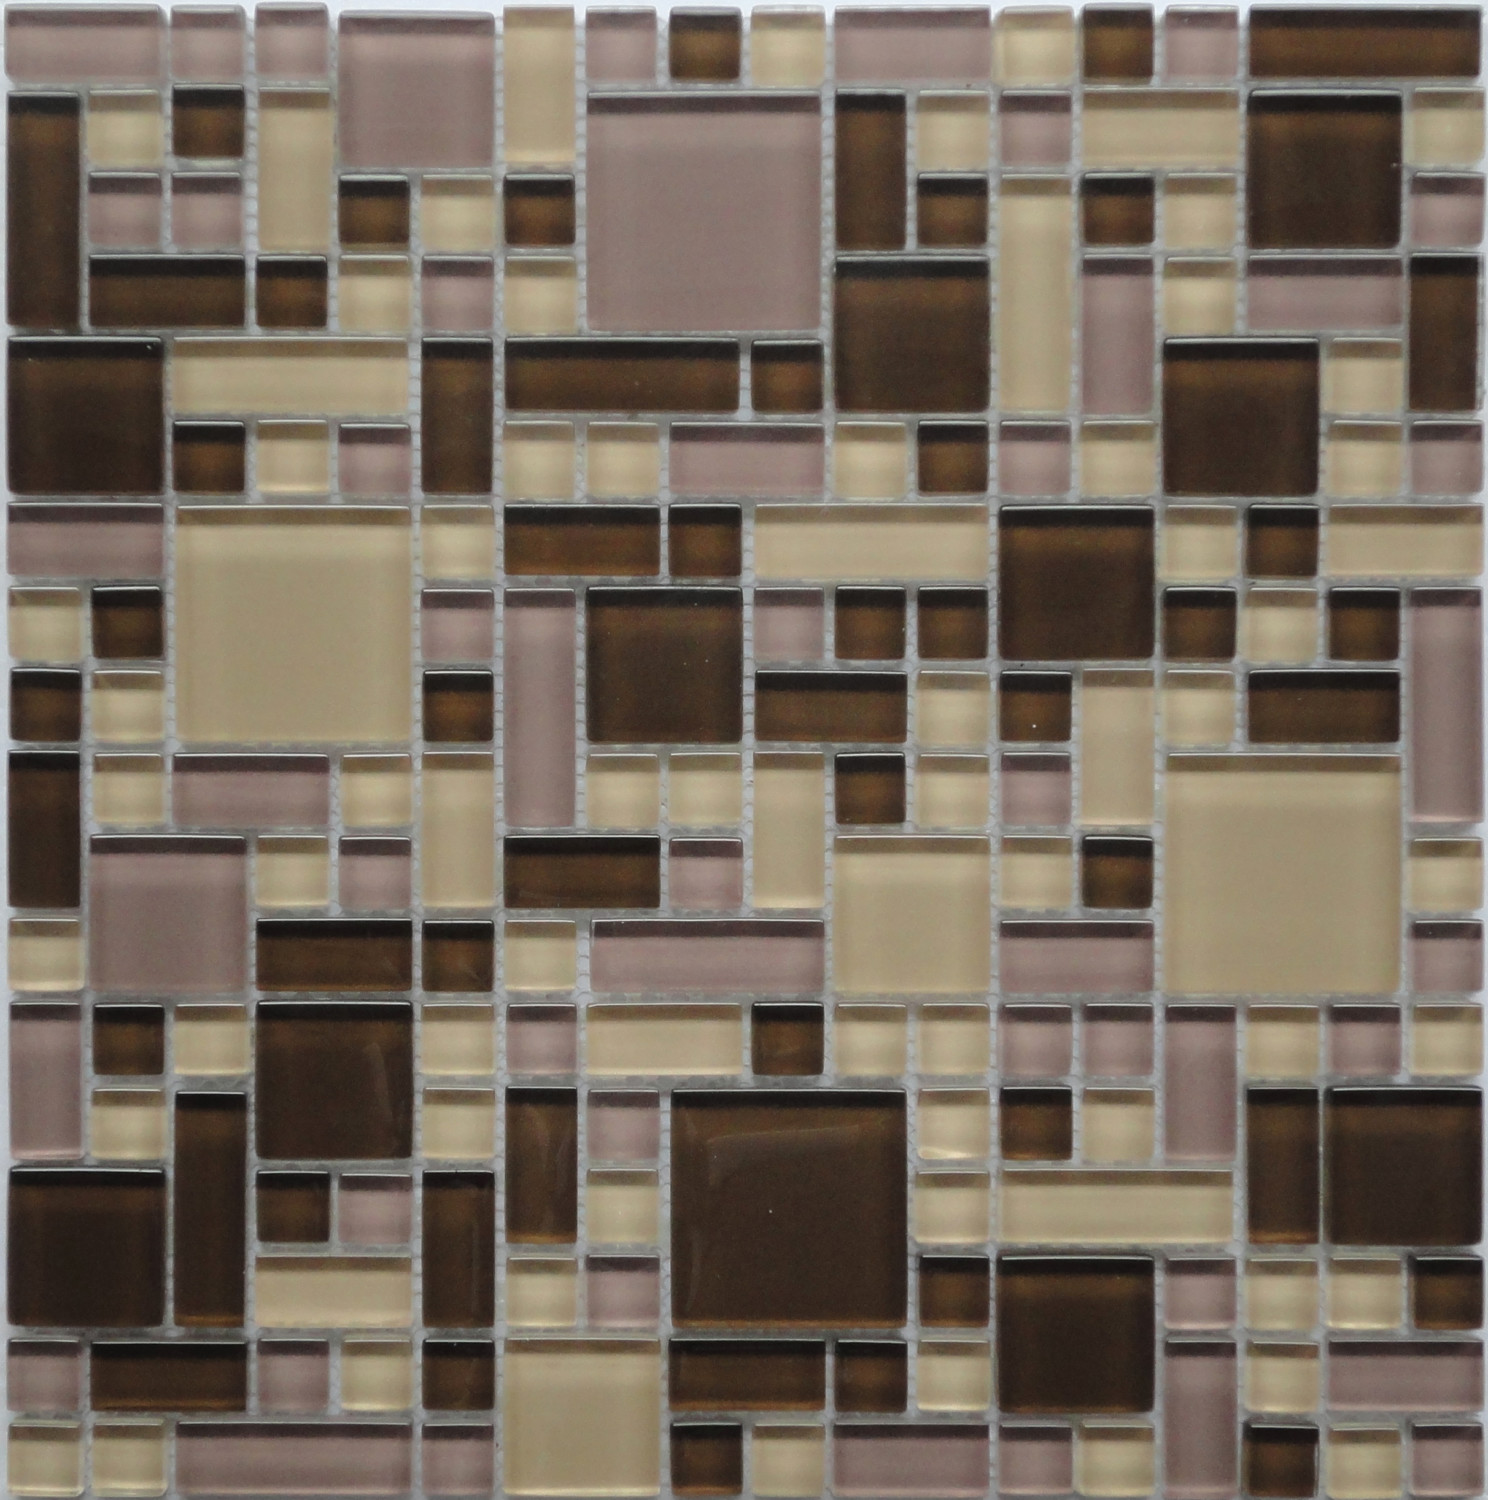 Cassava root gp03 brown puzzle glass mosaic tile cassava root beige brown purple geometric glass kitchen backsplash mosaic tile gp03 by lada dailygadgetfo Gallery